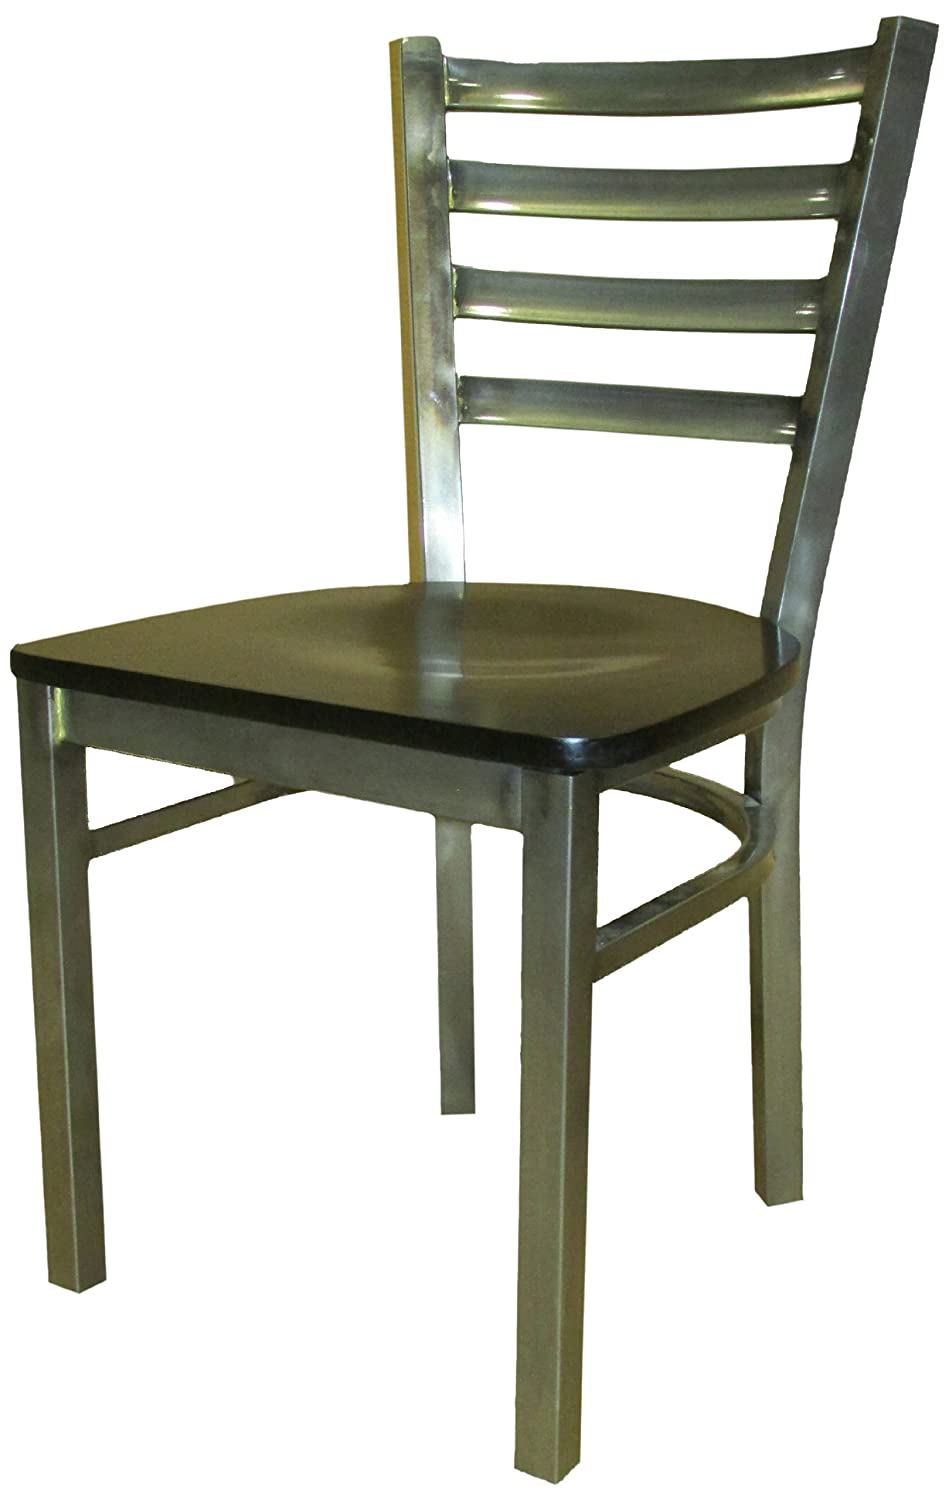 Oak Street Manufacturing SL135C-WB Metal Frame Clear Coat Dining Chair with Black Wood Seat, 18 Width x 32-3 8 Height x 17 Depth